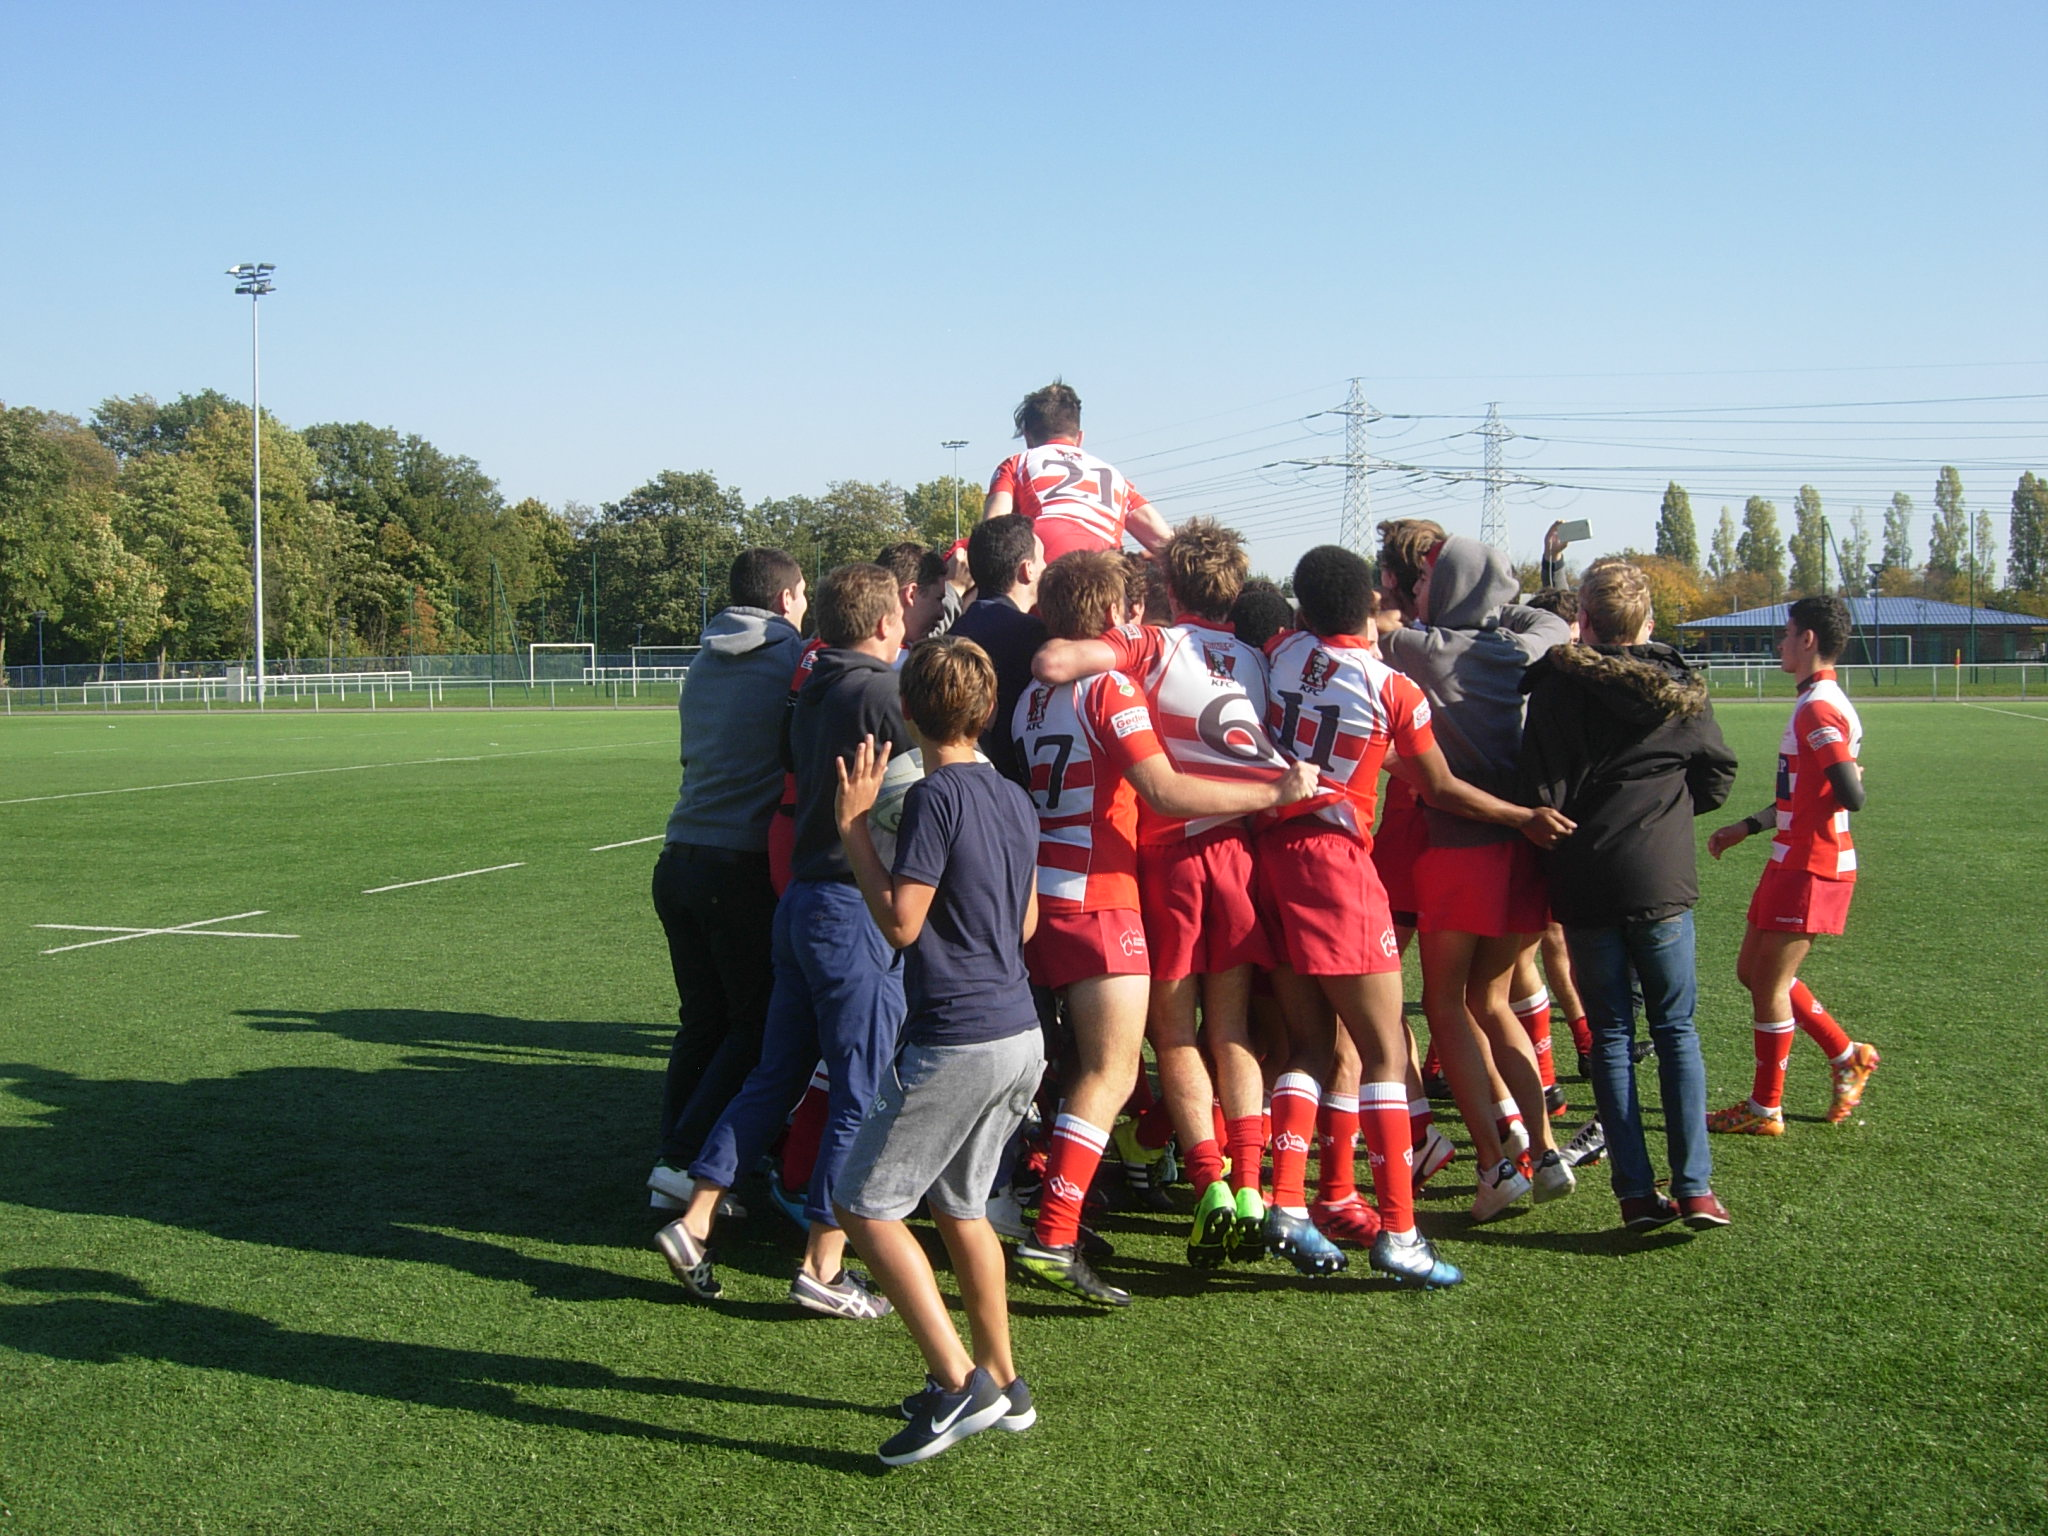 Clamart Rugby 92 - Qualification des juniors